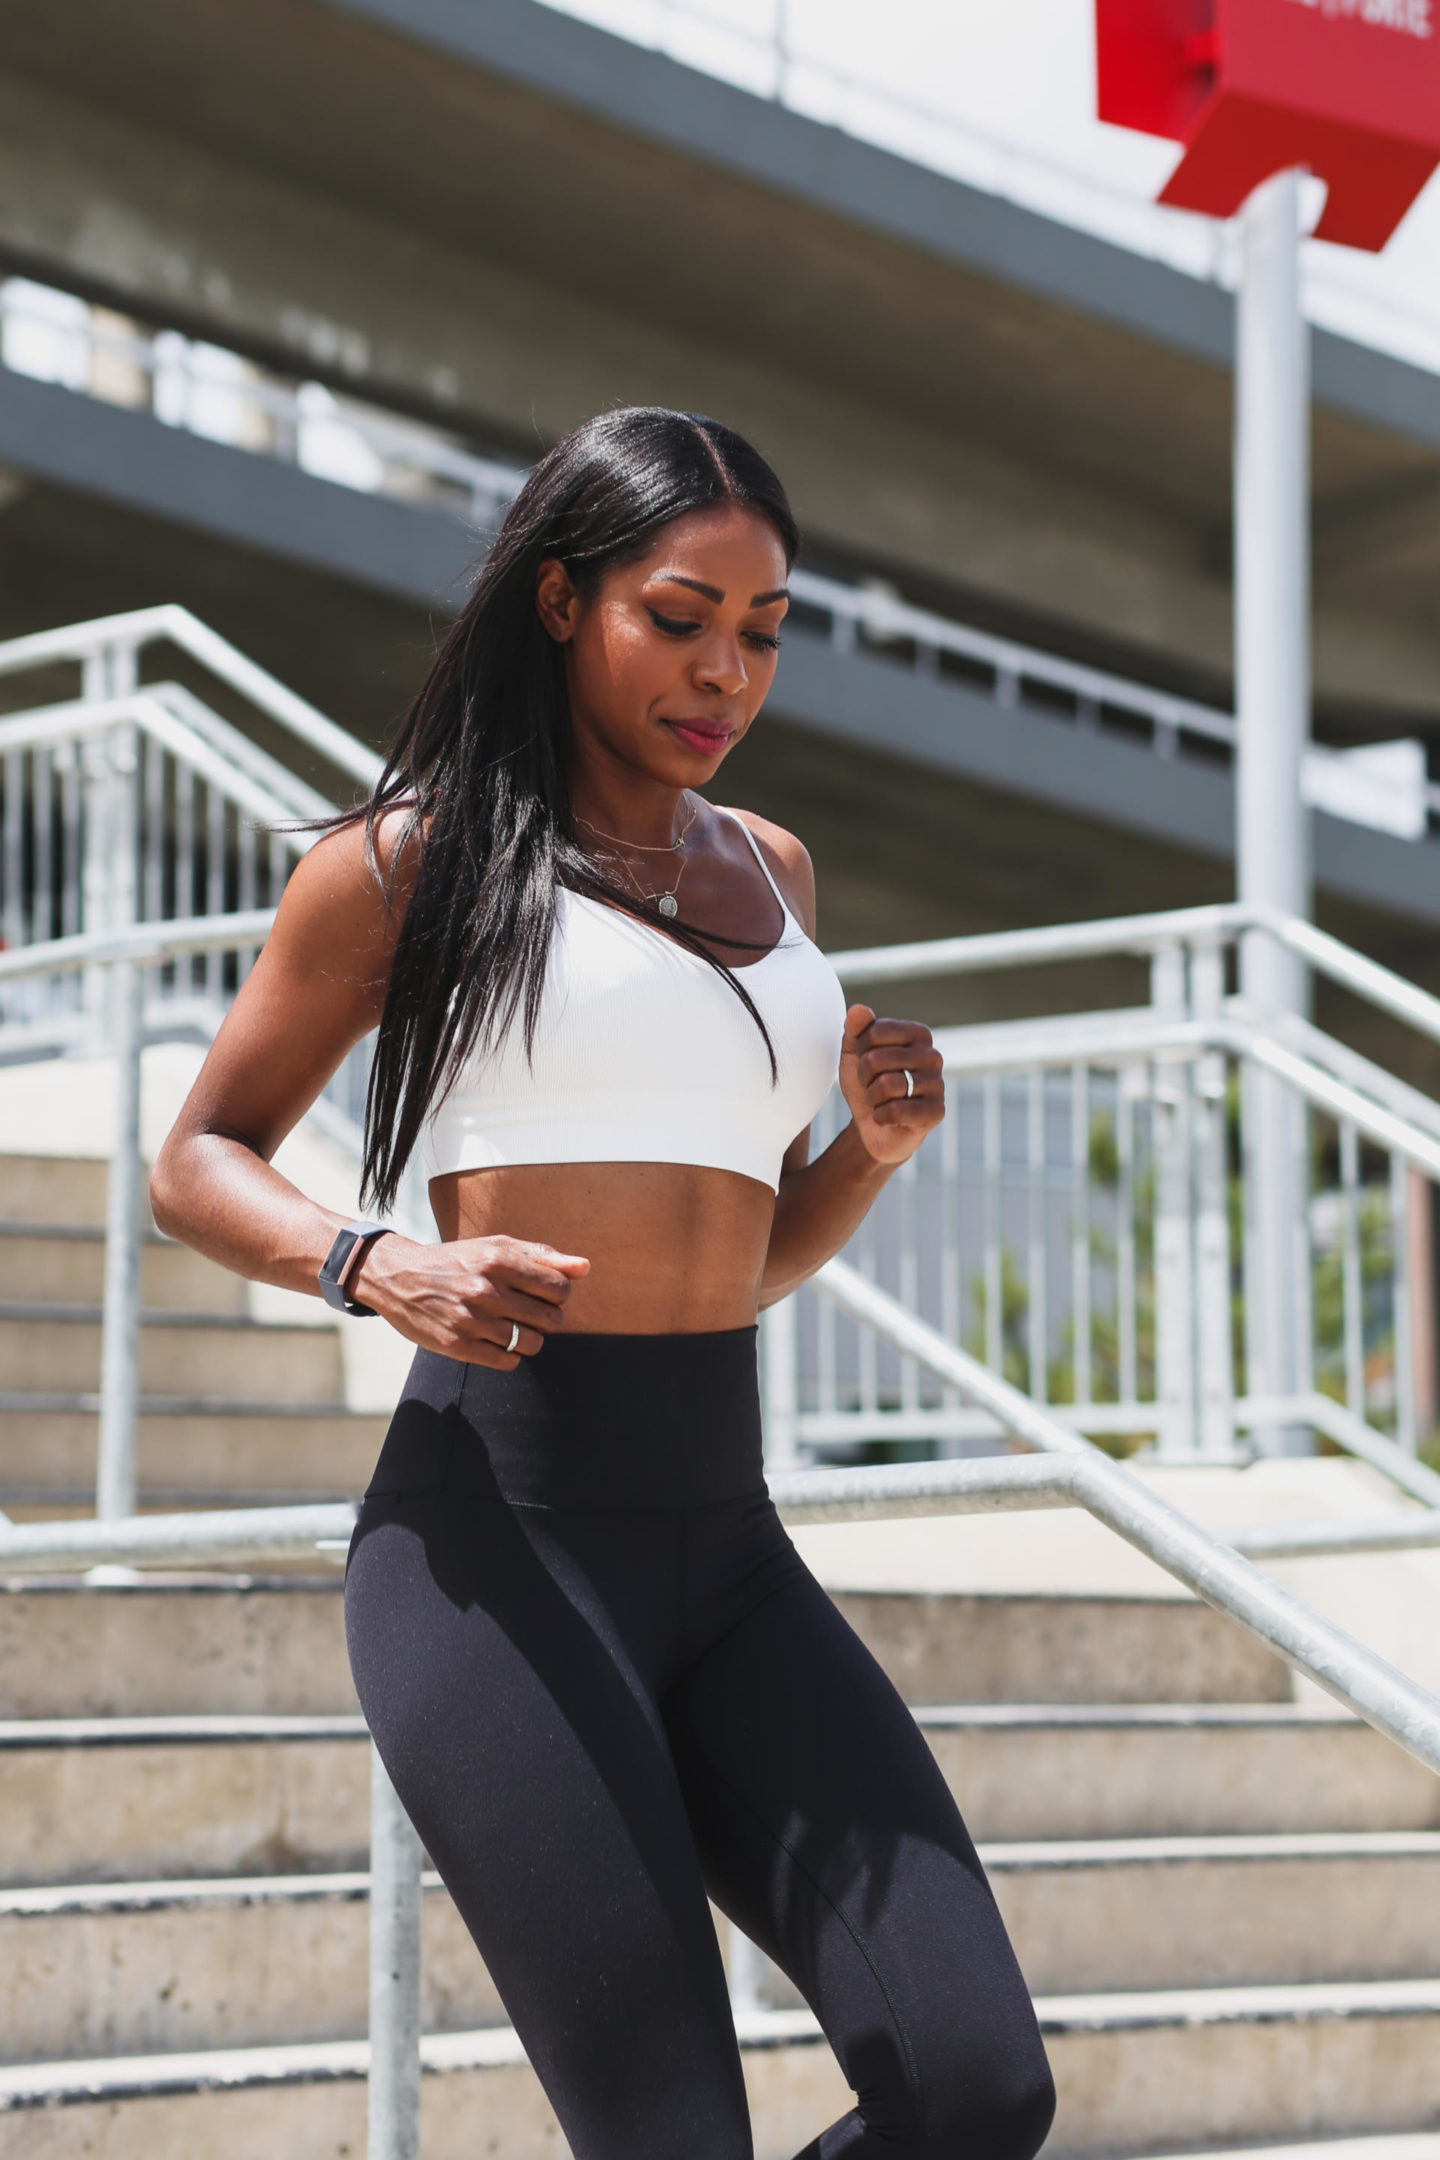 Dominique Baker working out while wearing the Fitbit Charge 3